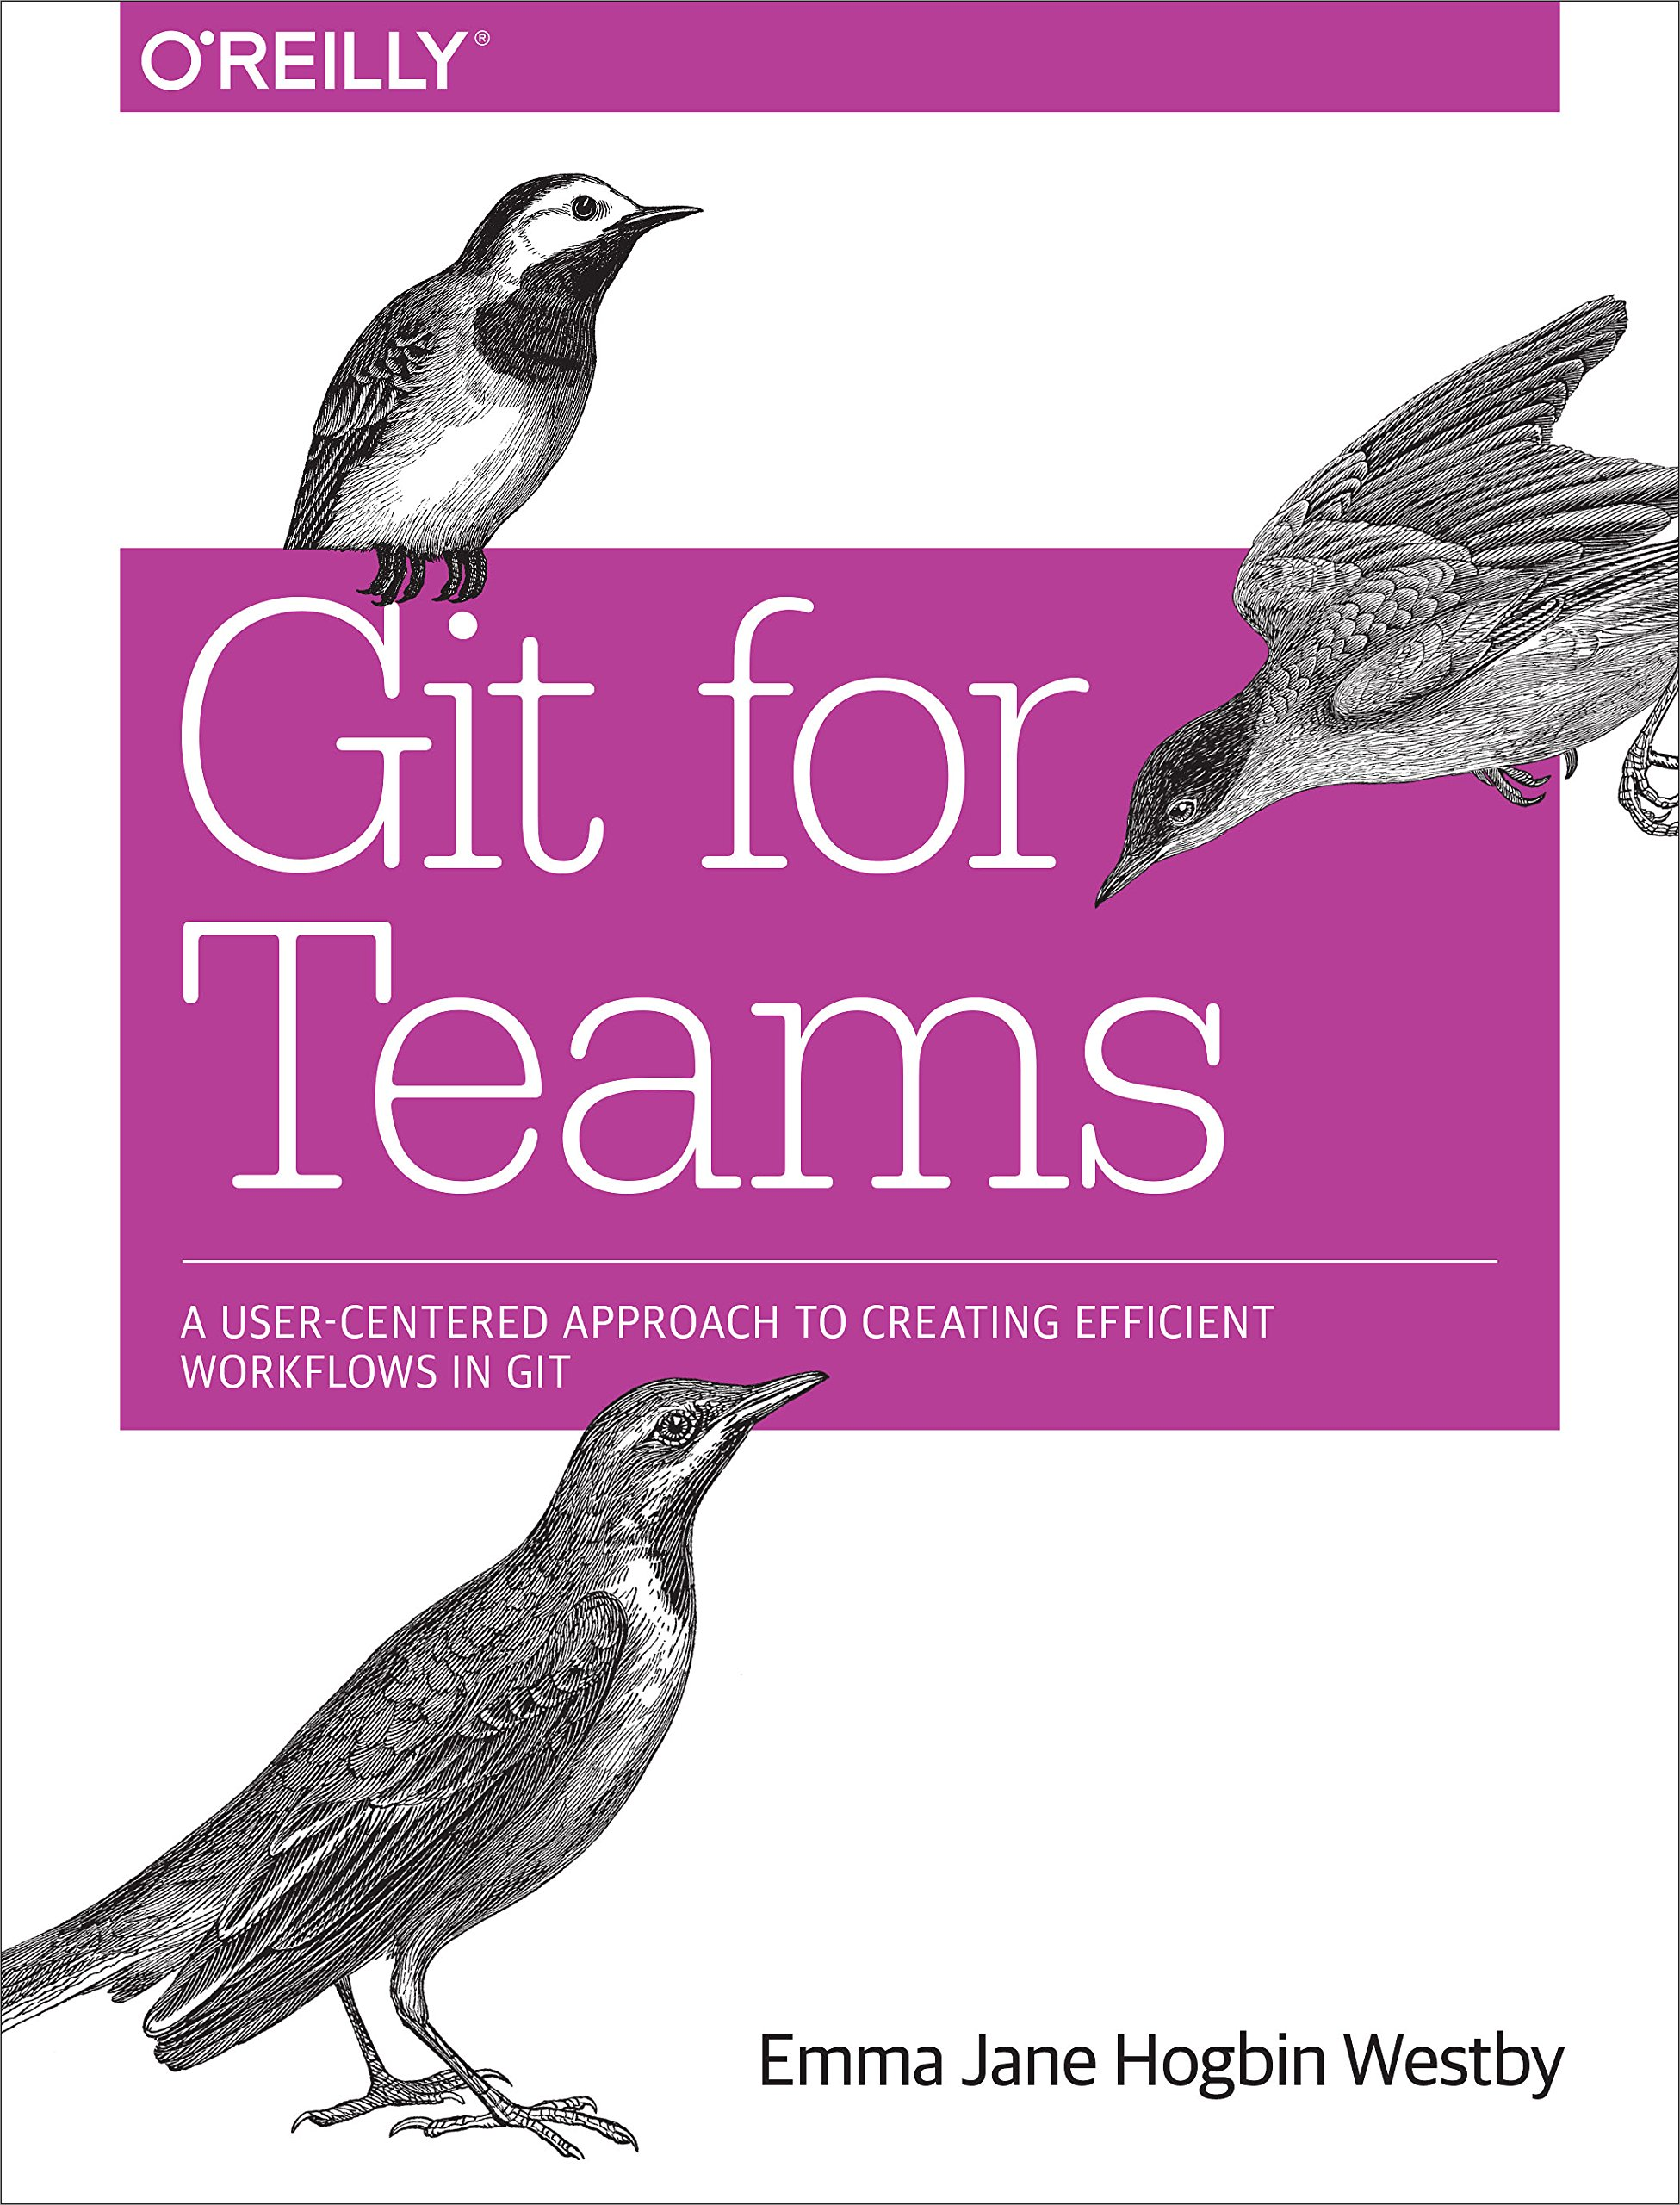 Git for Teams: A User-Centered Approach to Creating Efficient Workflows in Git by Emma Jane Hogbin Westby